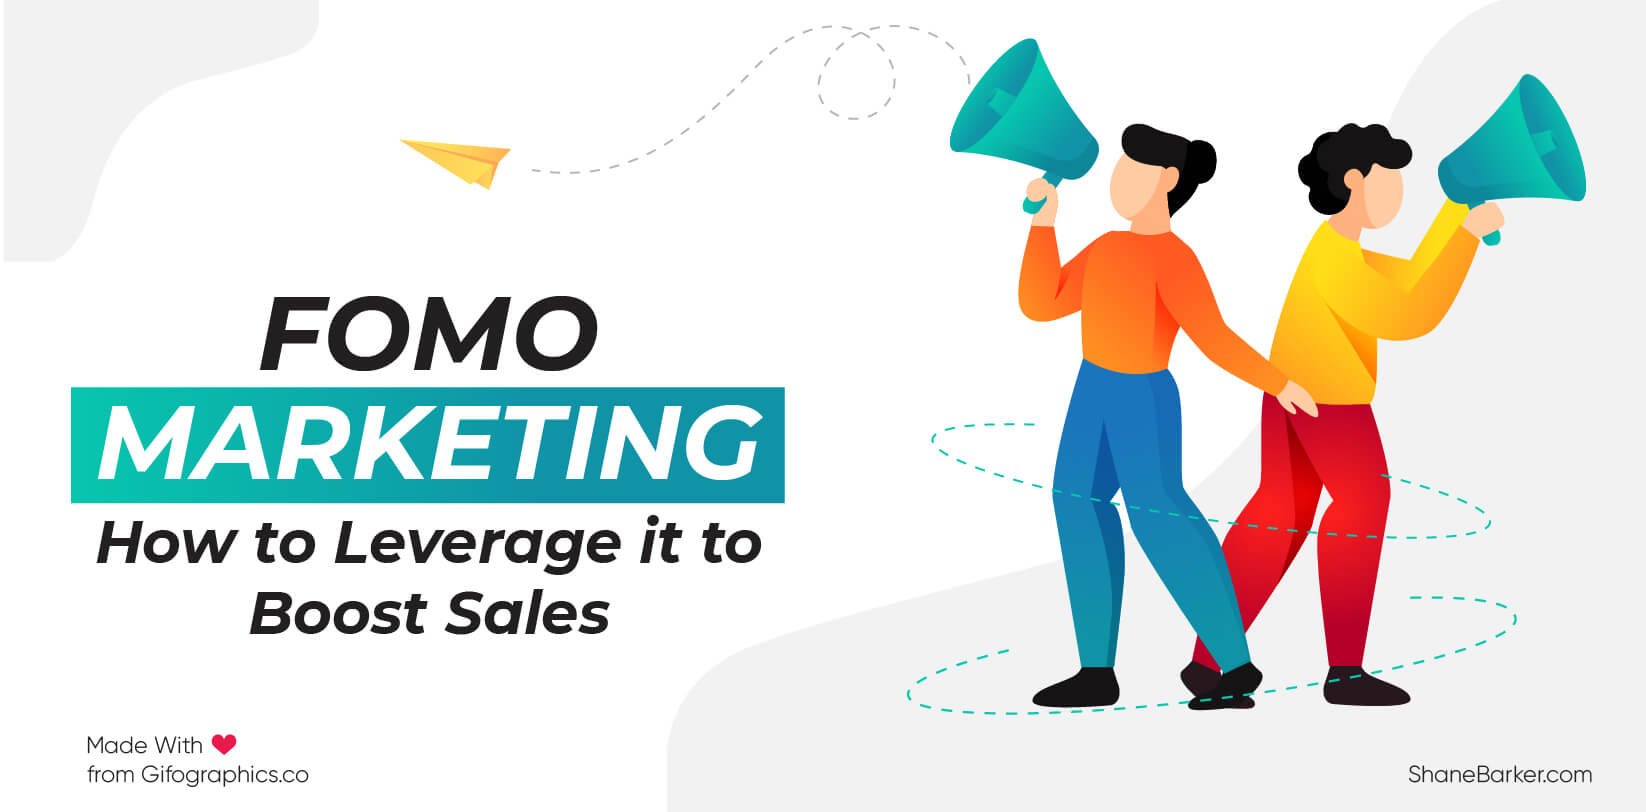 FOMO Marketing How to Leverage it to Boost Sales